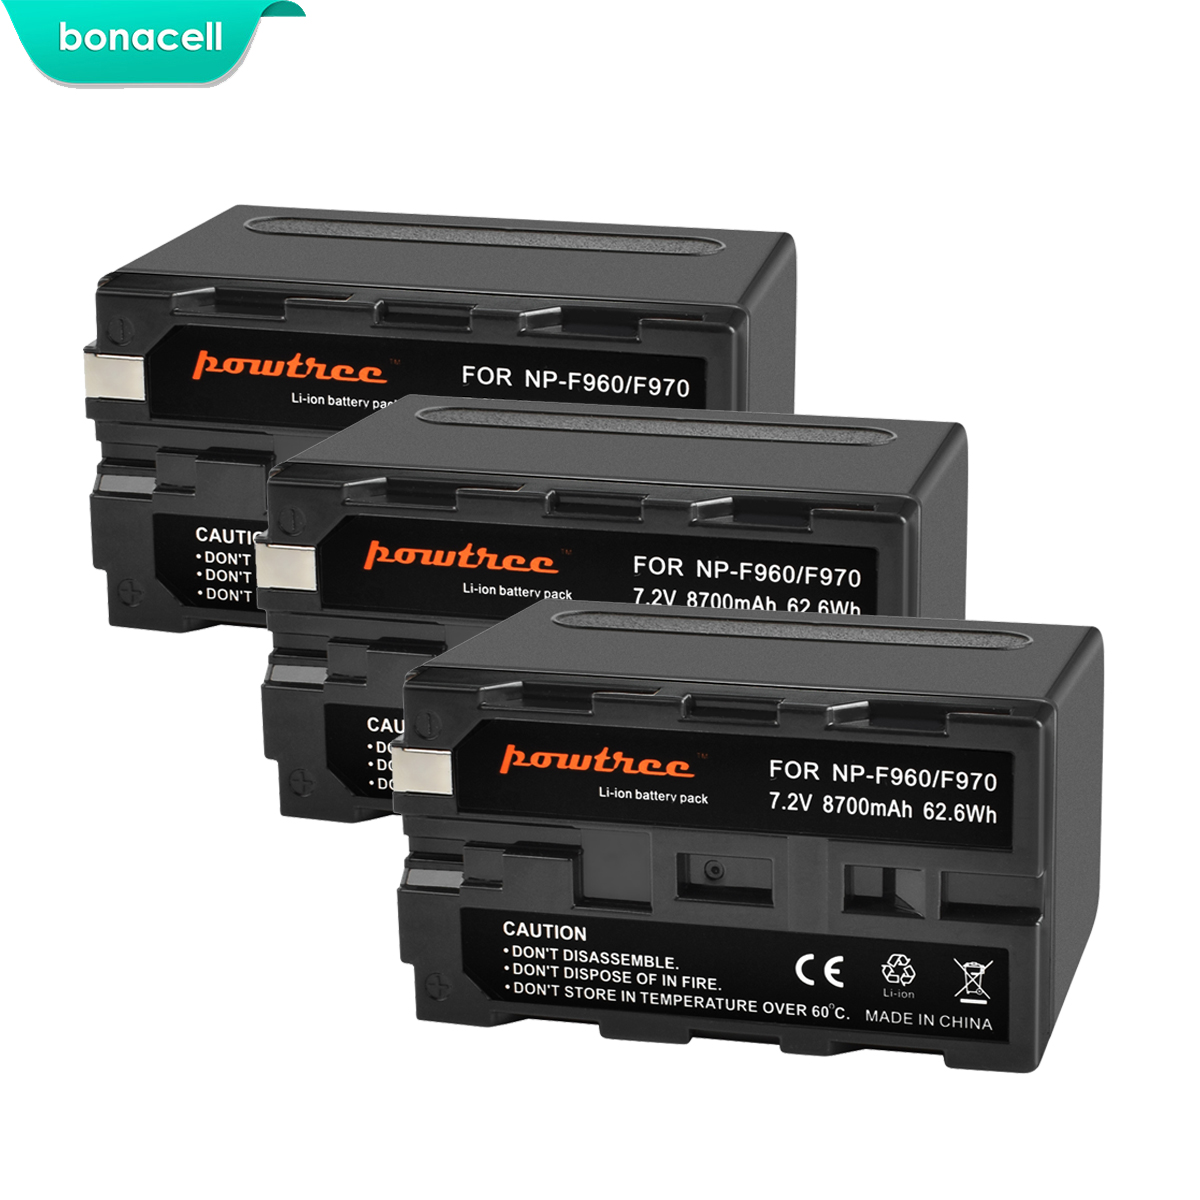 Image 3 - Bonacell 7.2V 8700mAh NP F960 NP F970 NP F960 F970 F950 Battery For Sony PLM 100 CCD TRV35 MVC FD91 MC1500C L10-in Digital Batteries from Consumer Electronics